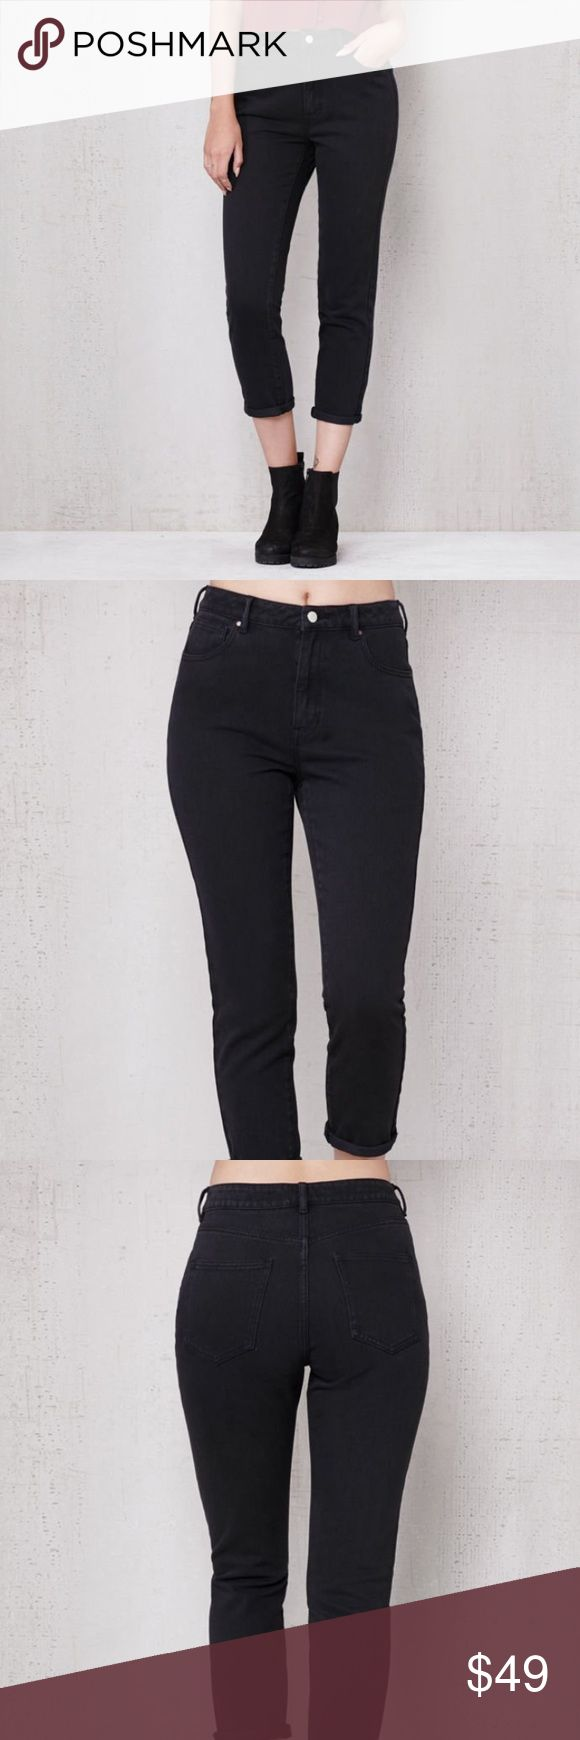 Pacsun Mom Jeans The Graphite Mom Jeans have a rigid fabrication for a nod to throwback fashion. They offer a super high rise fit, naturally cinched waist, relaxed leg, and rich black wash.  Mom jeans Super high rise fit 11.25'' rise 26.5'' inseam Sits cinched at the small of your waist Relaxed leg with a taper at the hem  Black wash Button closure, zip fly Can be worn rolled or unrolled Rigid fabric 100% cotton Machine washable PacSun Jeans Ankle & Cropped